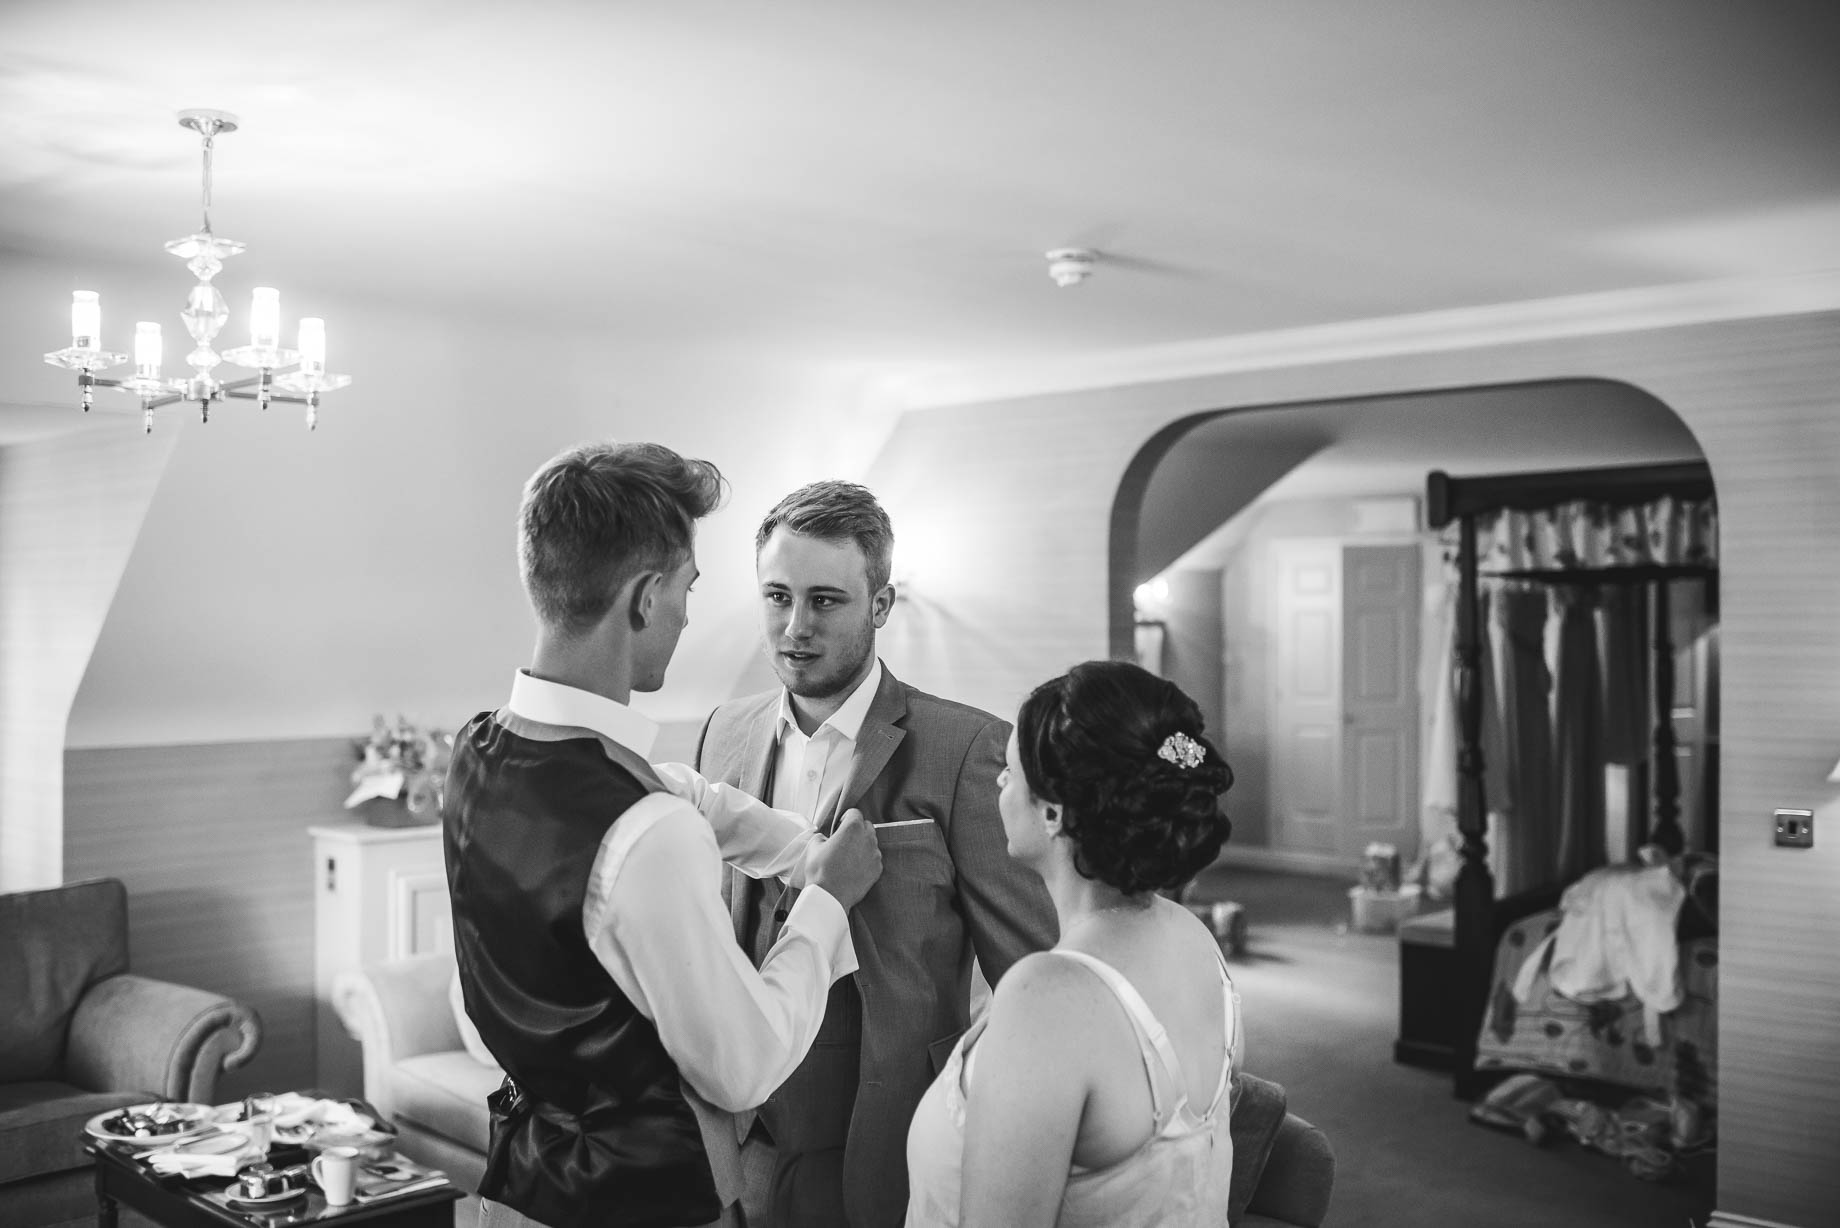 Luton Hoo wedding photography by Guy Collier Photography - Lauren and Gem (18 of 178)